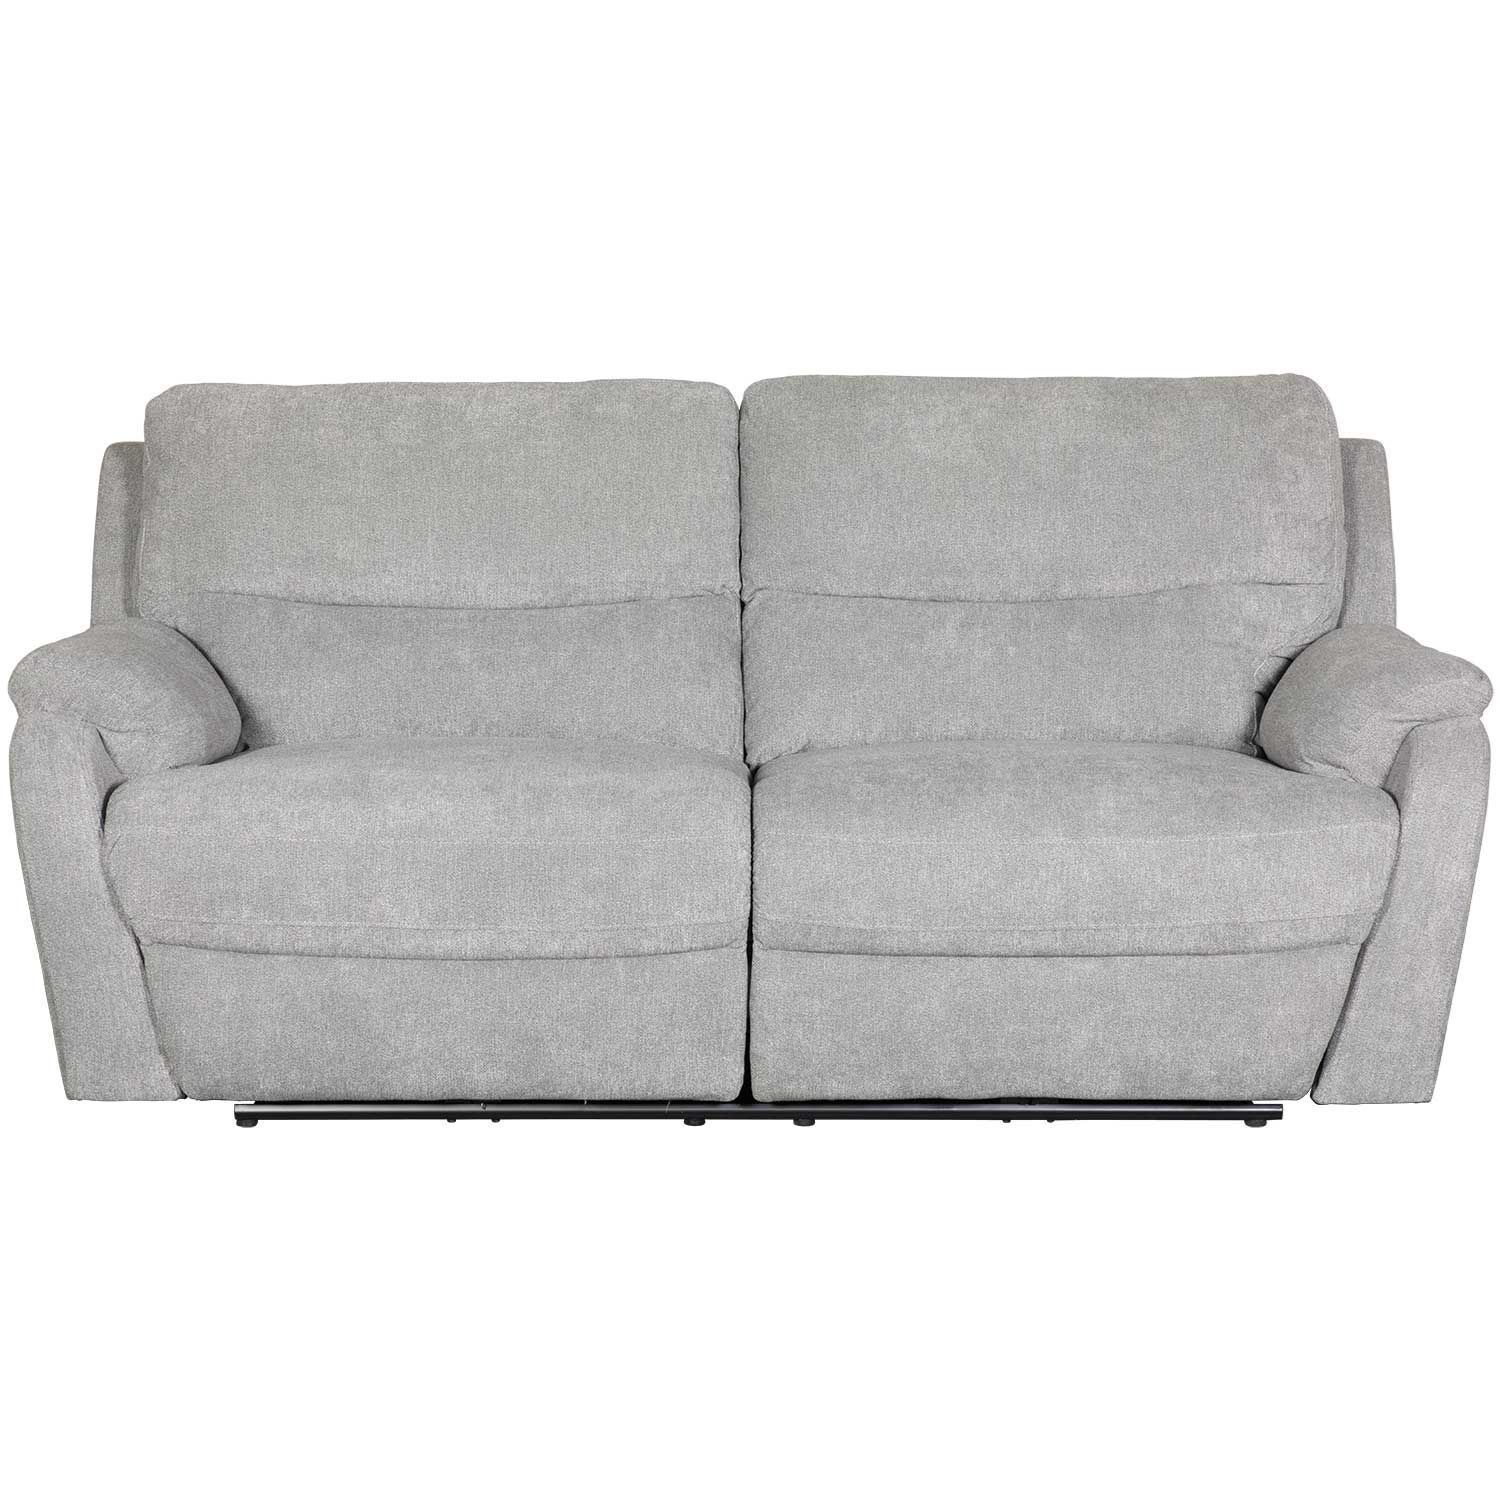 Picture Of Marley Reclining Sofa With Headrest